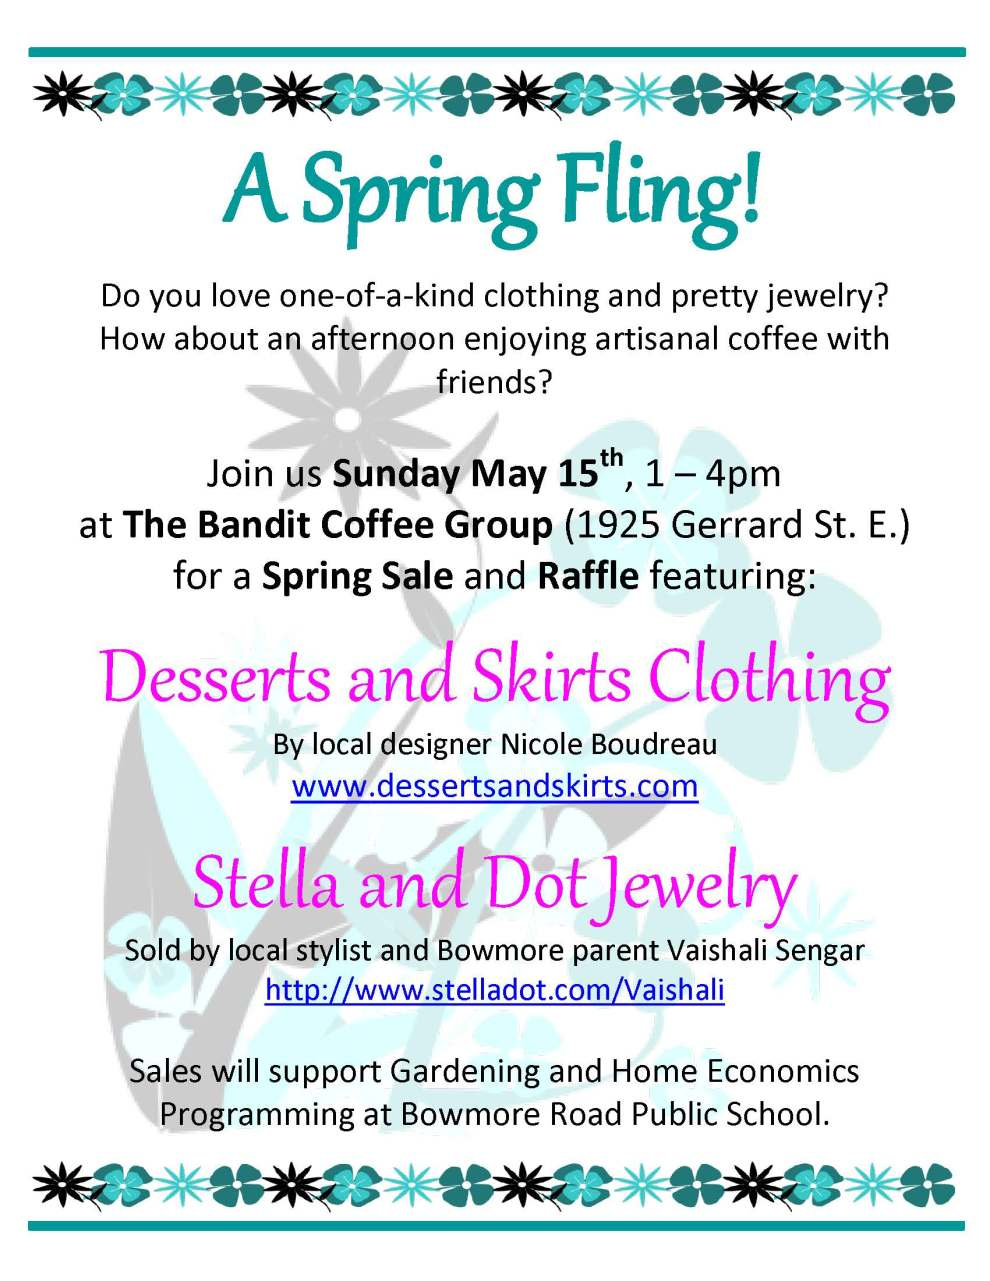 A Spring Fling! Do you love one-of-a-kind clothing and pretty jewelry? How about an afternoon enjoying artisanal coffee with friends? Join us Sunday May 15th, 1 – 4pm at The Bandit Coffee Group (1925 Gerrard St. E.) for a Spring Sale and Raffle featuring: Desserts and Skirts Clothing By local designer Nicole Boudreau www.dessertsandskirts.com Stella and Dot Jewelry Sold by local stylist and Bowmore parent Vaishali Sengar http://www.stelladot.com/Vaishali Sales will support Gardening and Home Economics Programming at Bowmore Road Public School.